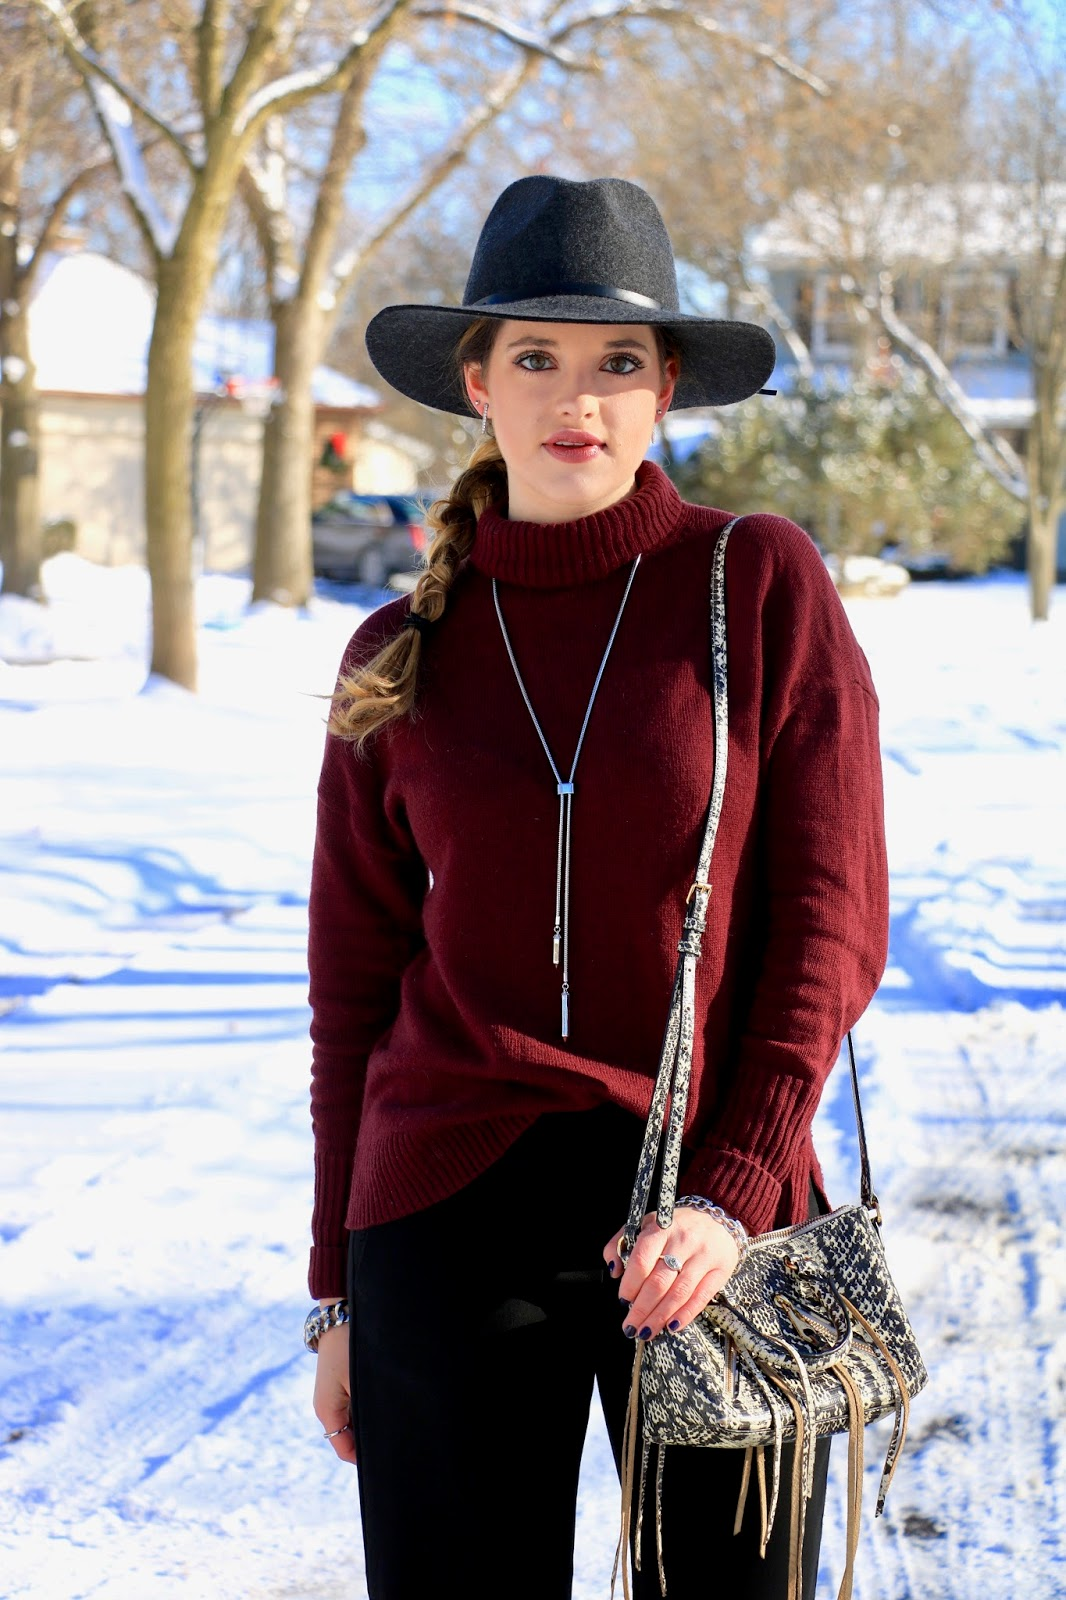 Nyc fashion blogger Kathleen Harper showing how to wear a hat